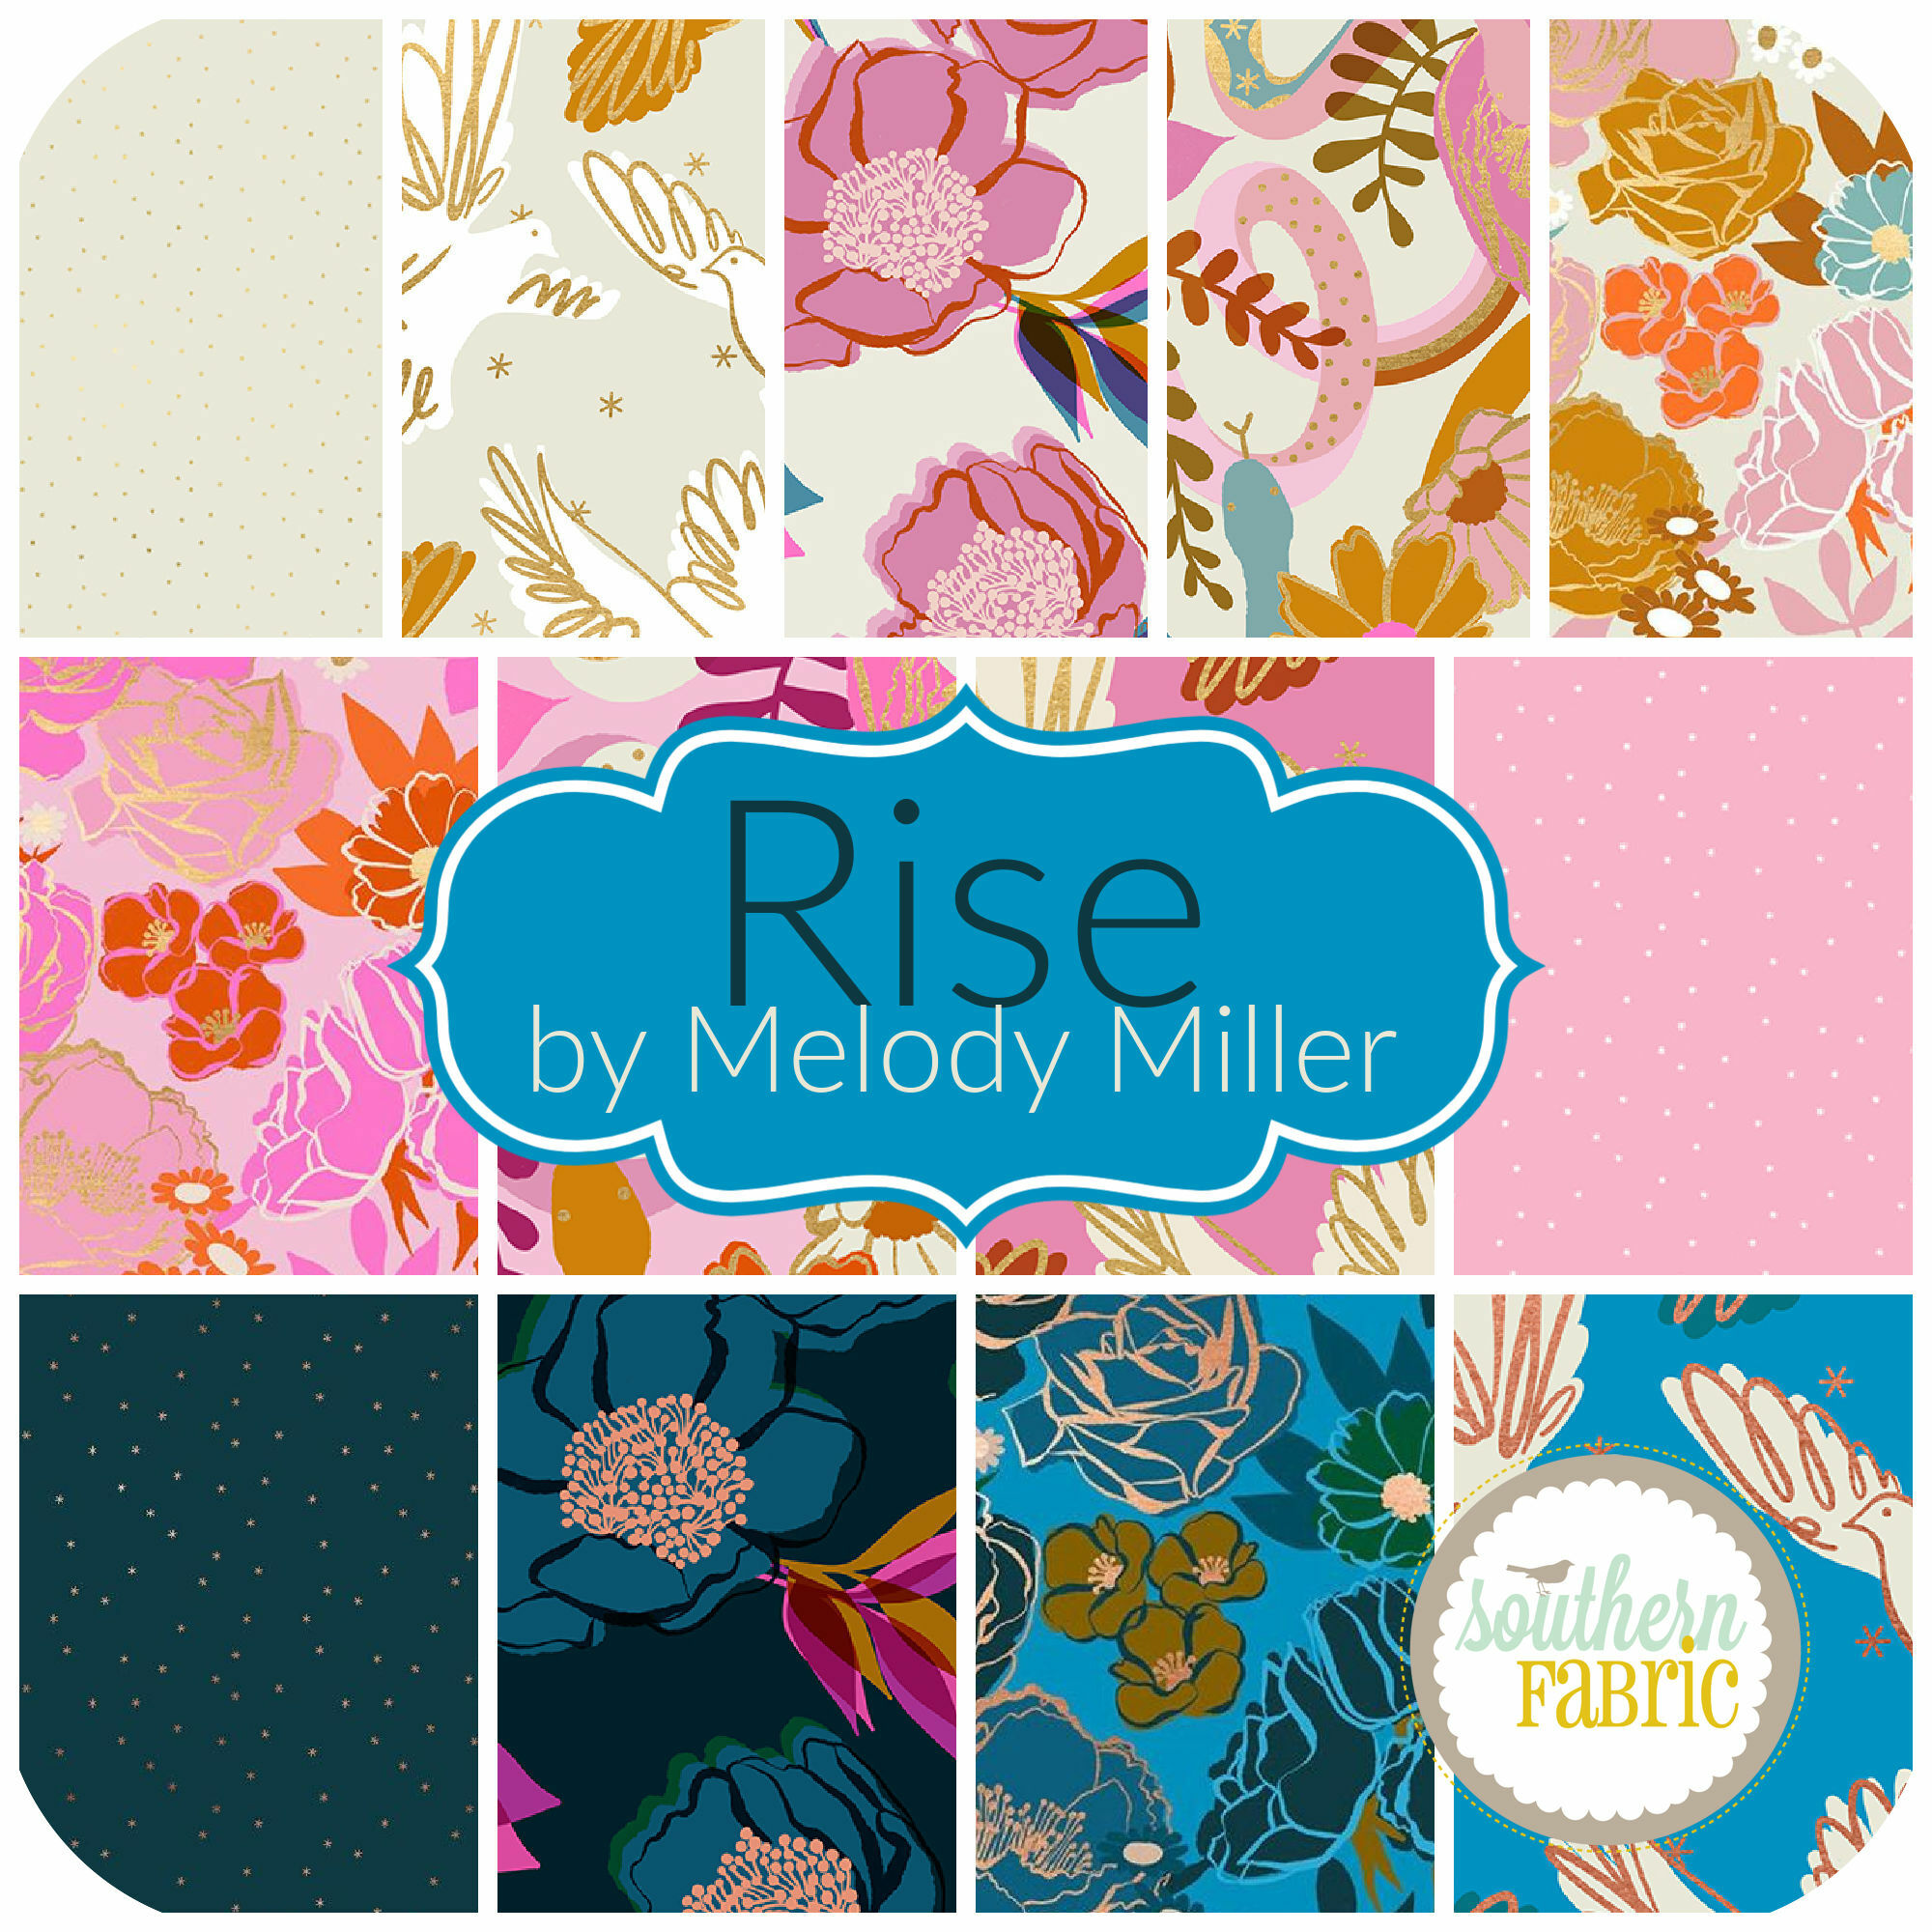 Rise by Melody Miller